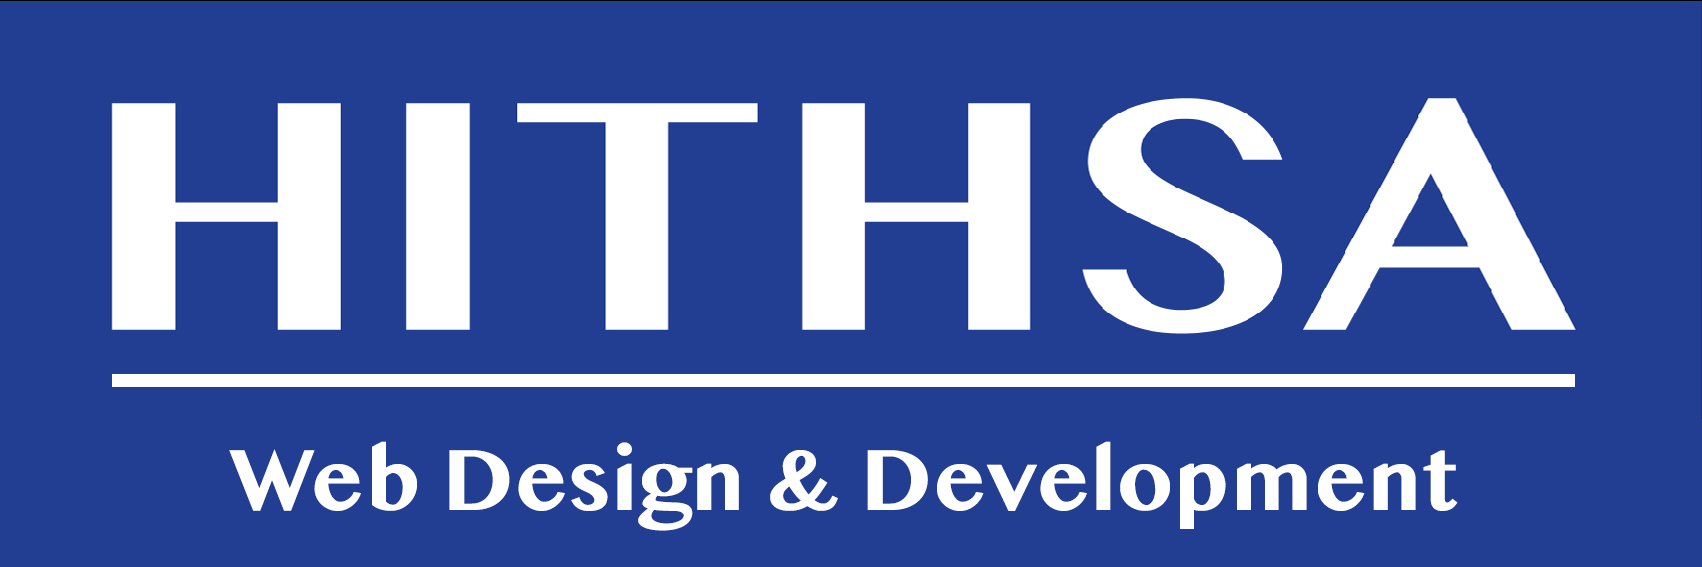 Hthsa Web Design & Development